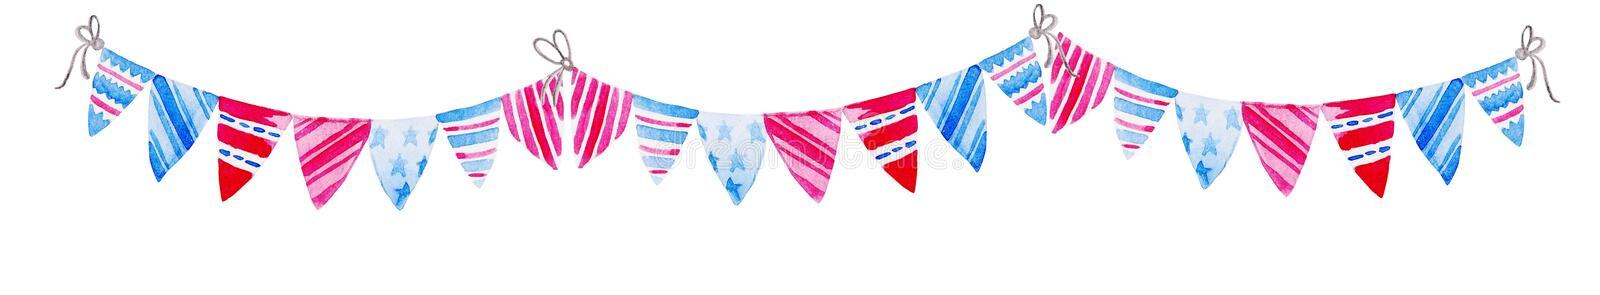 Illustration for 4th of July. Watercolor Bunting Flags. Celebration of American Independence Day. Illustration for for 4th of July. Watercolor Bunting Flags stock illustration